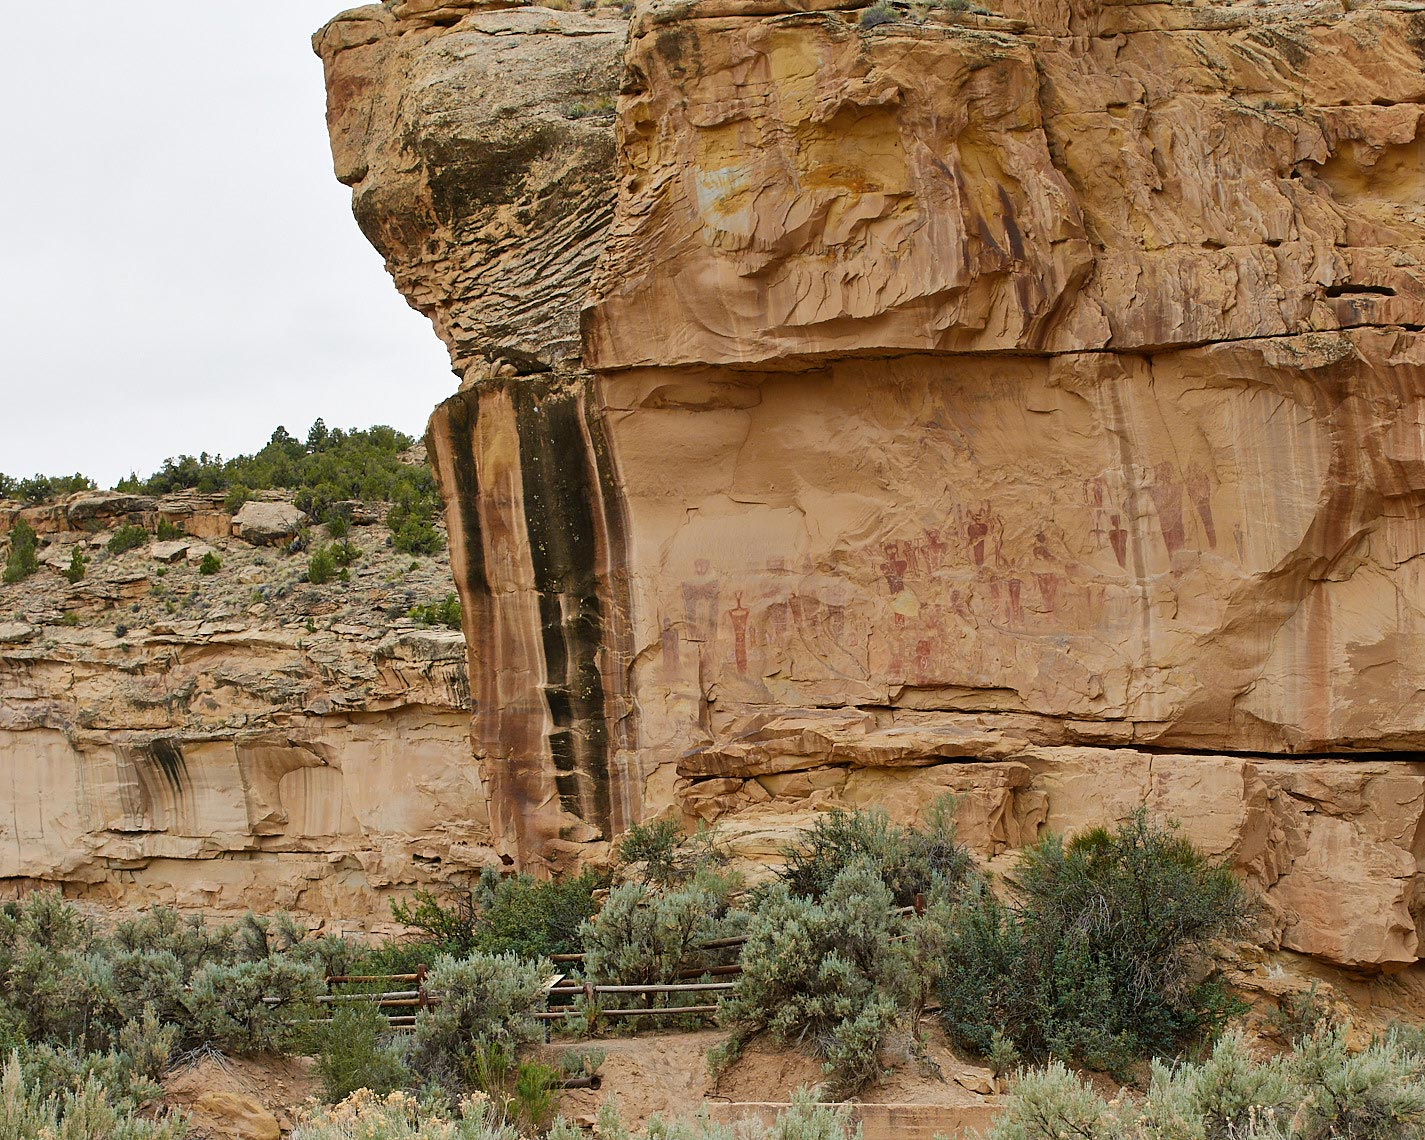 20120517_Sego-canyon-rock-art_009